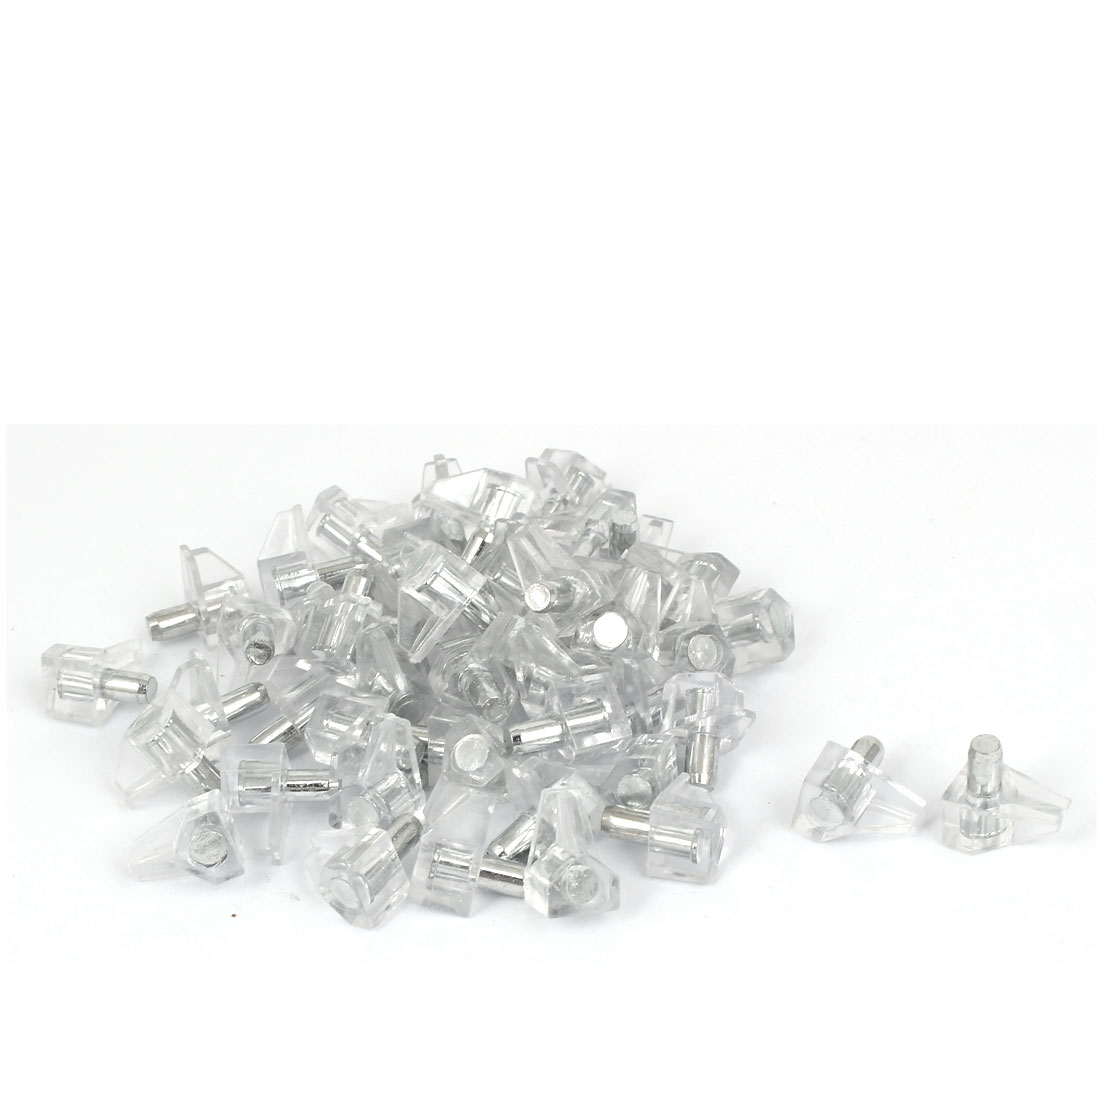 50 Pcs 5mm Dia Support Peg Stud Pin for Kitchen Shelf Cupboard Cabinet